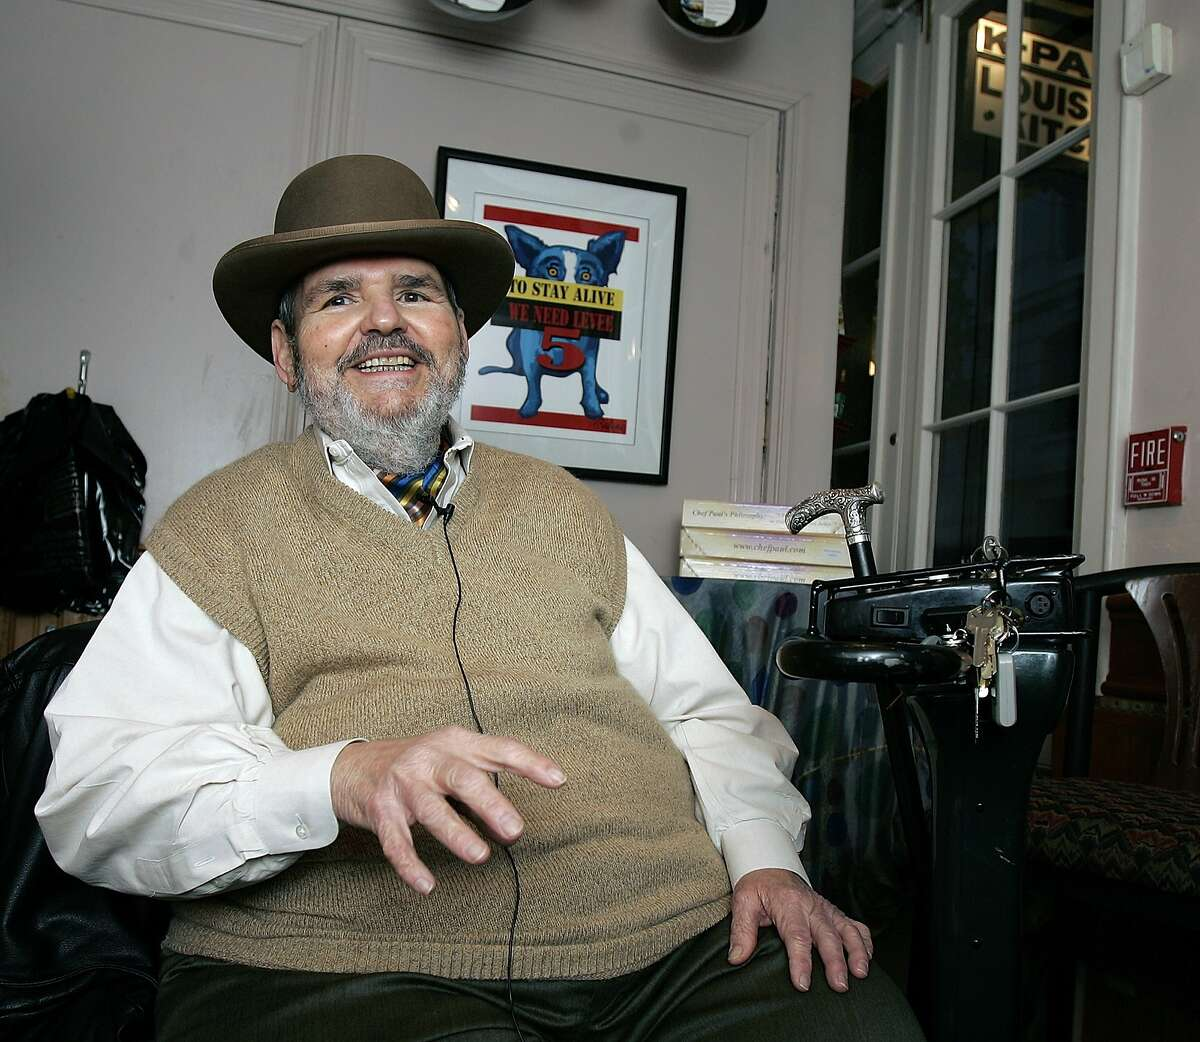 FILE -In this Friday, Feb. 2, 2007 file photo, chef Paul Prudhomme gestures during an interview at his French Quarter restaurant, K-Paul's Louisiana Kitchen, in New Orleans. Prudhomme, the Cajun who popularized spicy Louisiana cuisine and became one of the first American restaurant chefs to achieve worldwide fame, died Thursday, Oct. 7, 2015. He was 75. (AP Photo/Bill Haber, File)